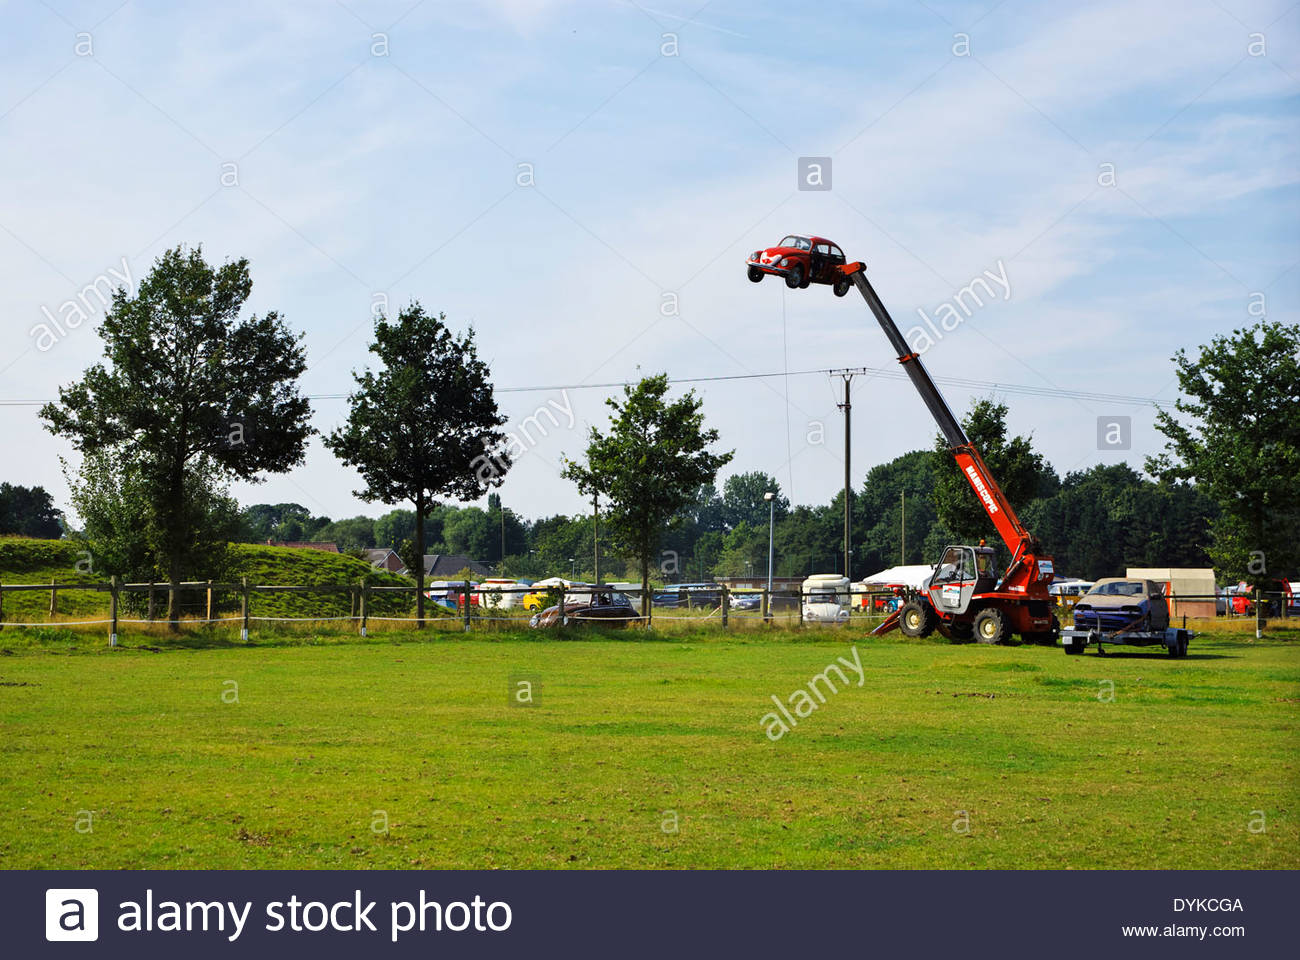 VW Bug is hoisted on Manitou Maniscopic lift at Käfer Verein (Beetle Club) gathering in Fürstenau, Lower Saxony, Germany. - Stock Image